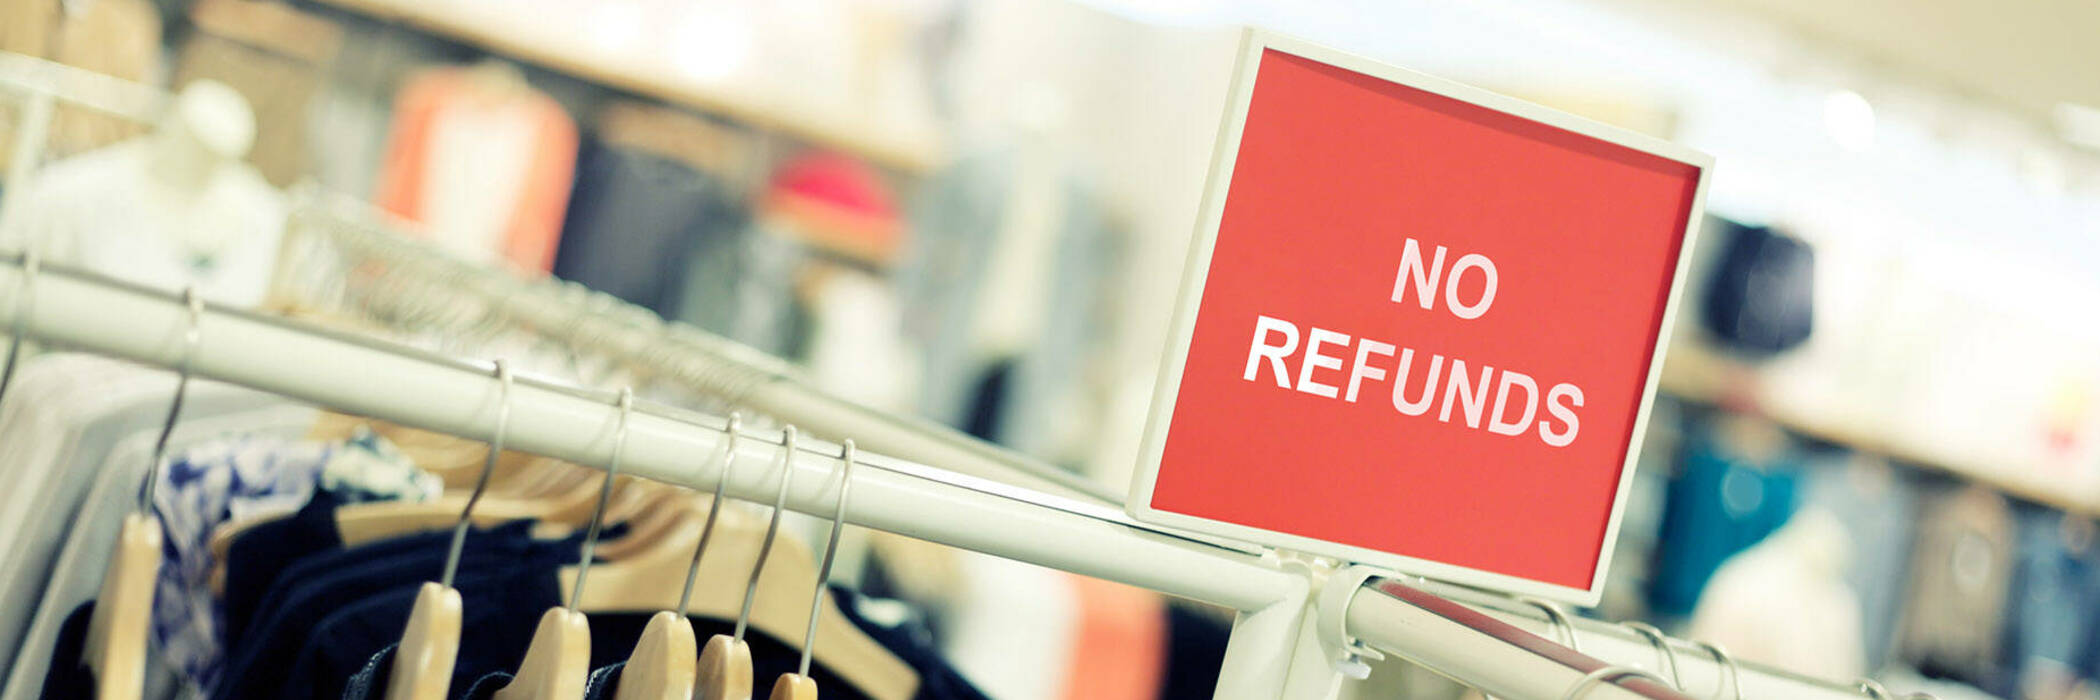 """""""NO REFUNDS"""" signage in shop"""